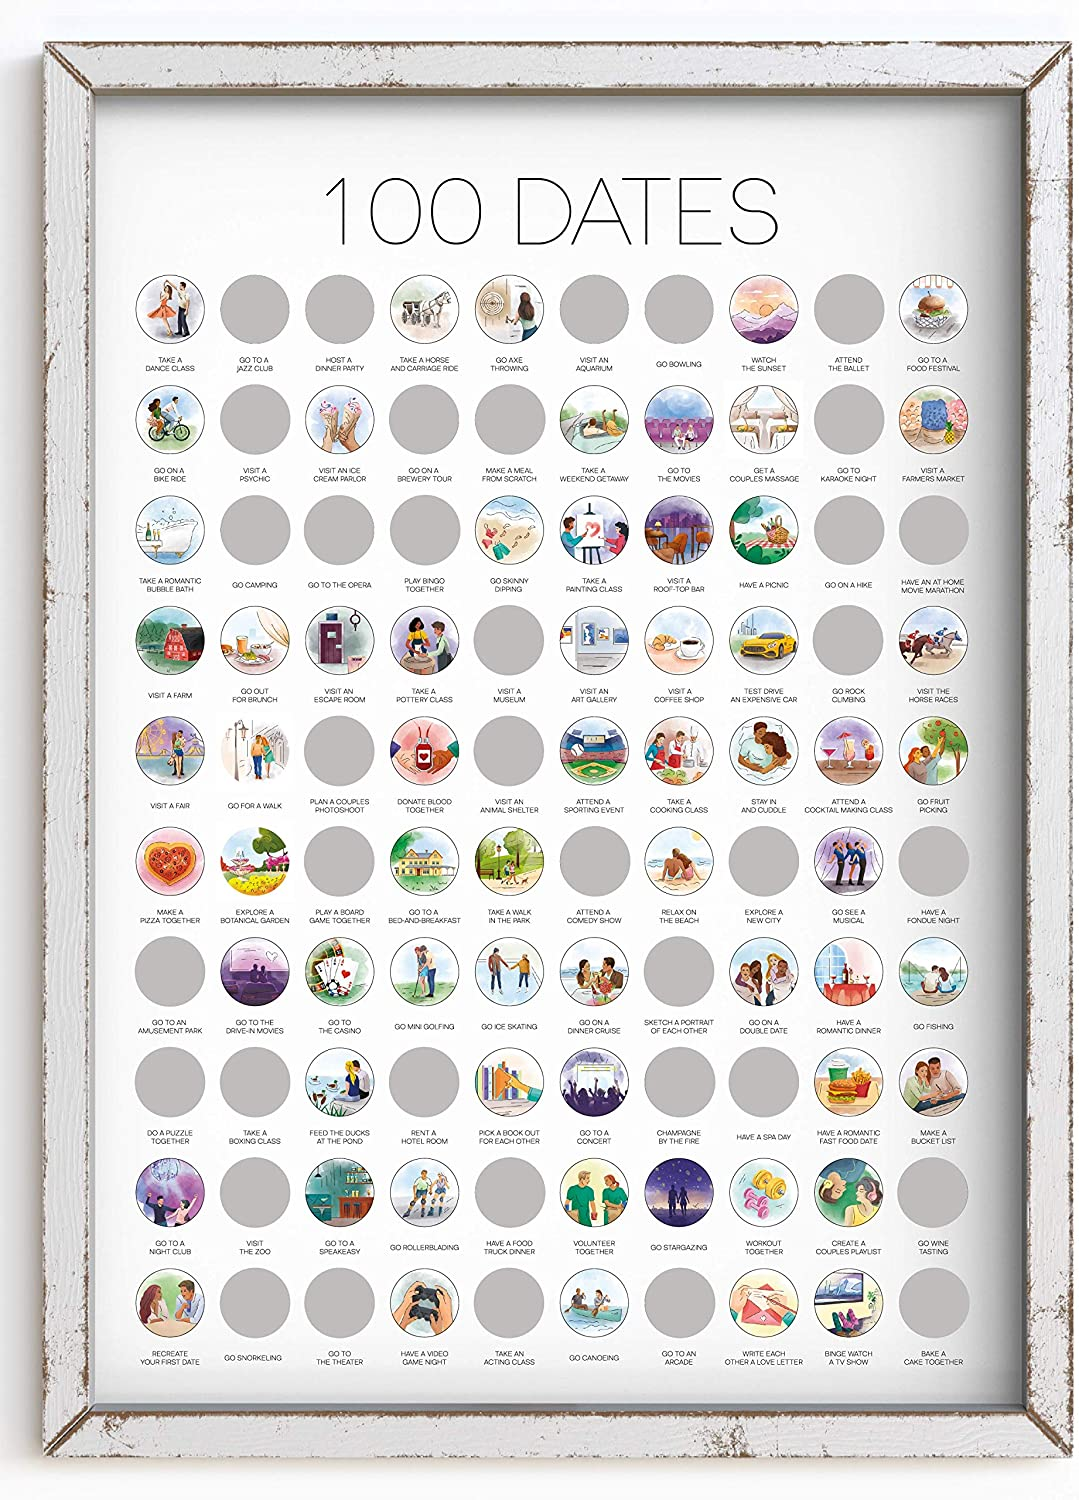 gifts-for-couples-date-idea-poster